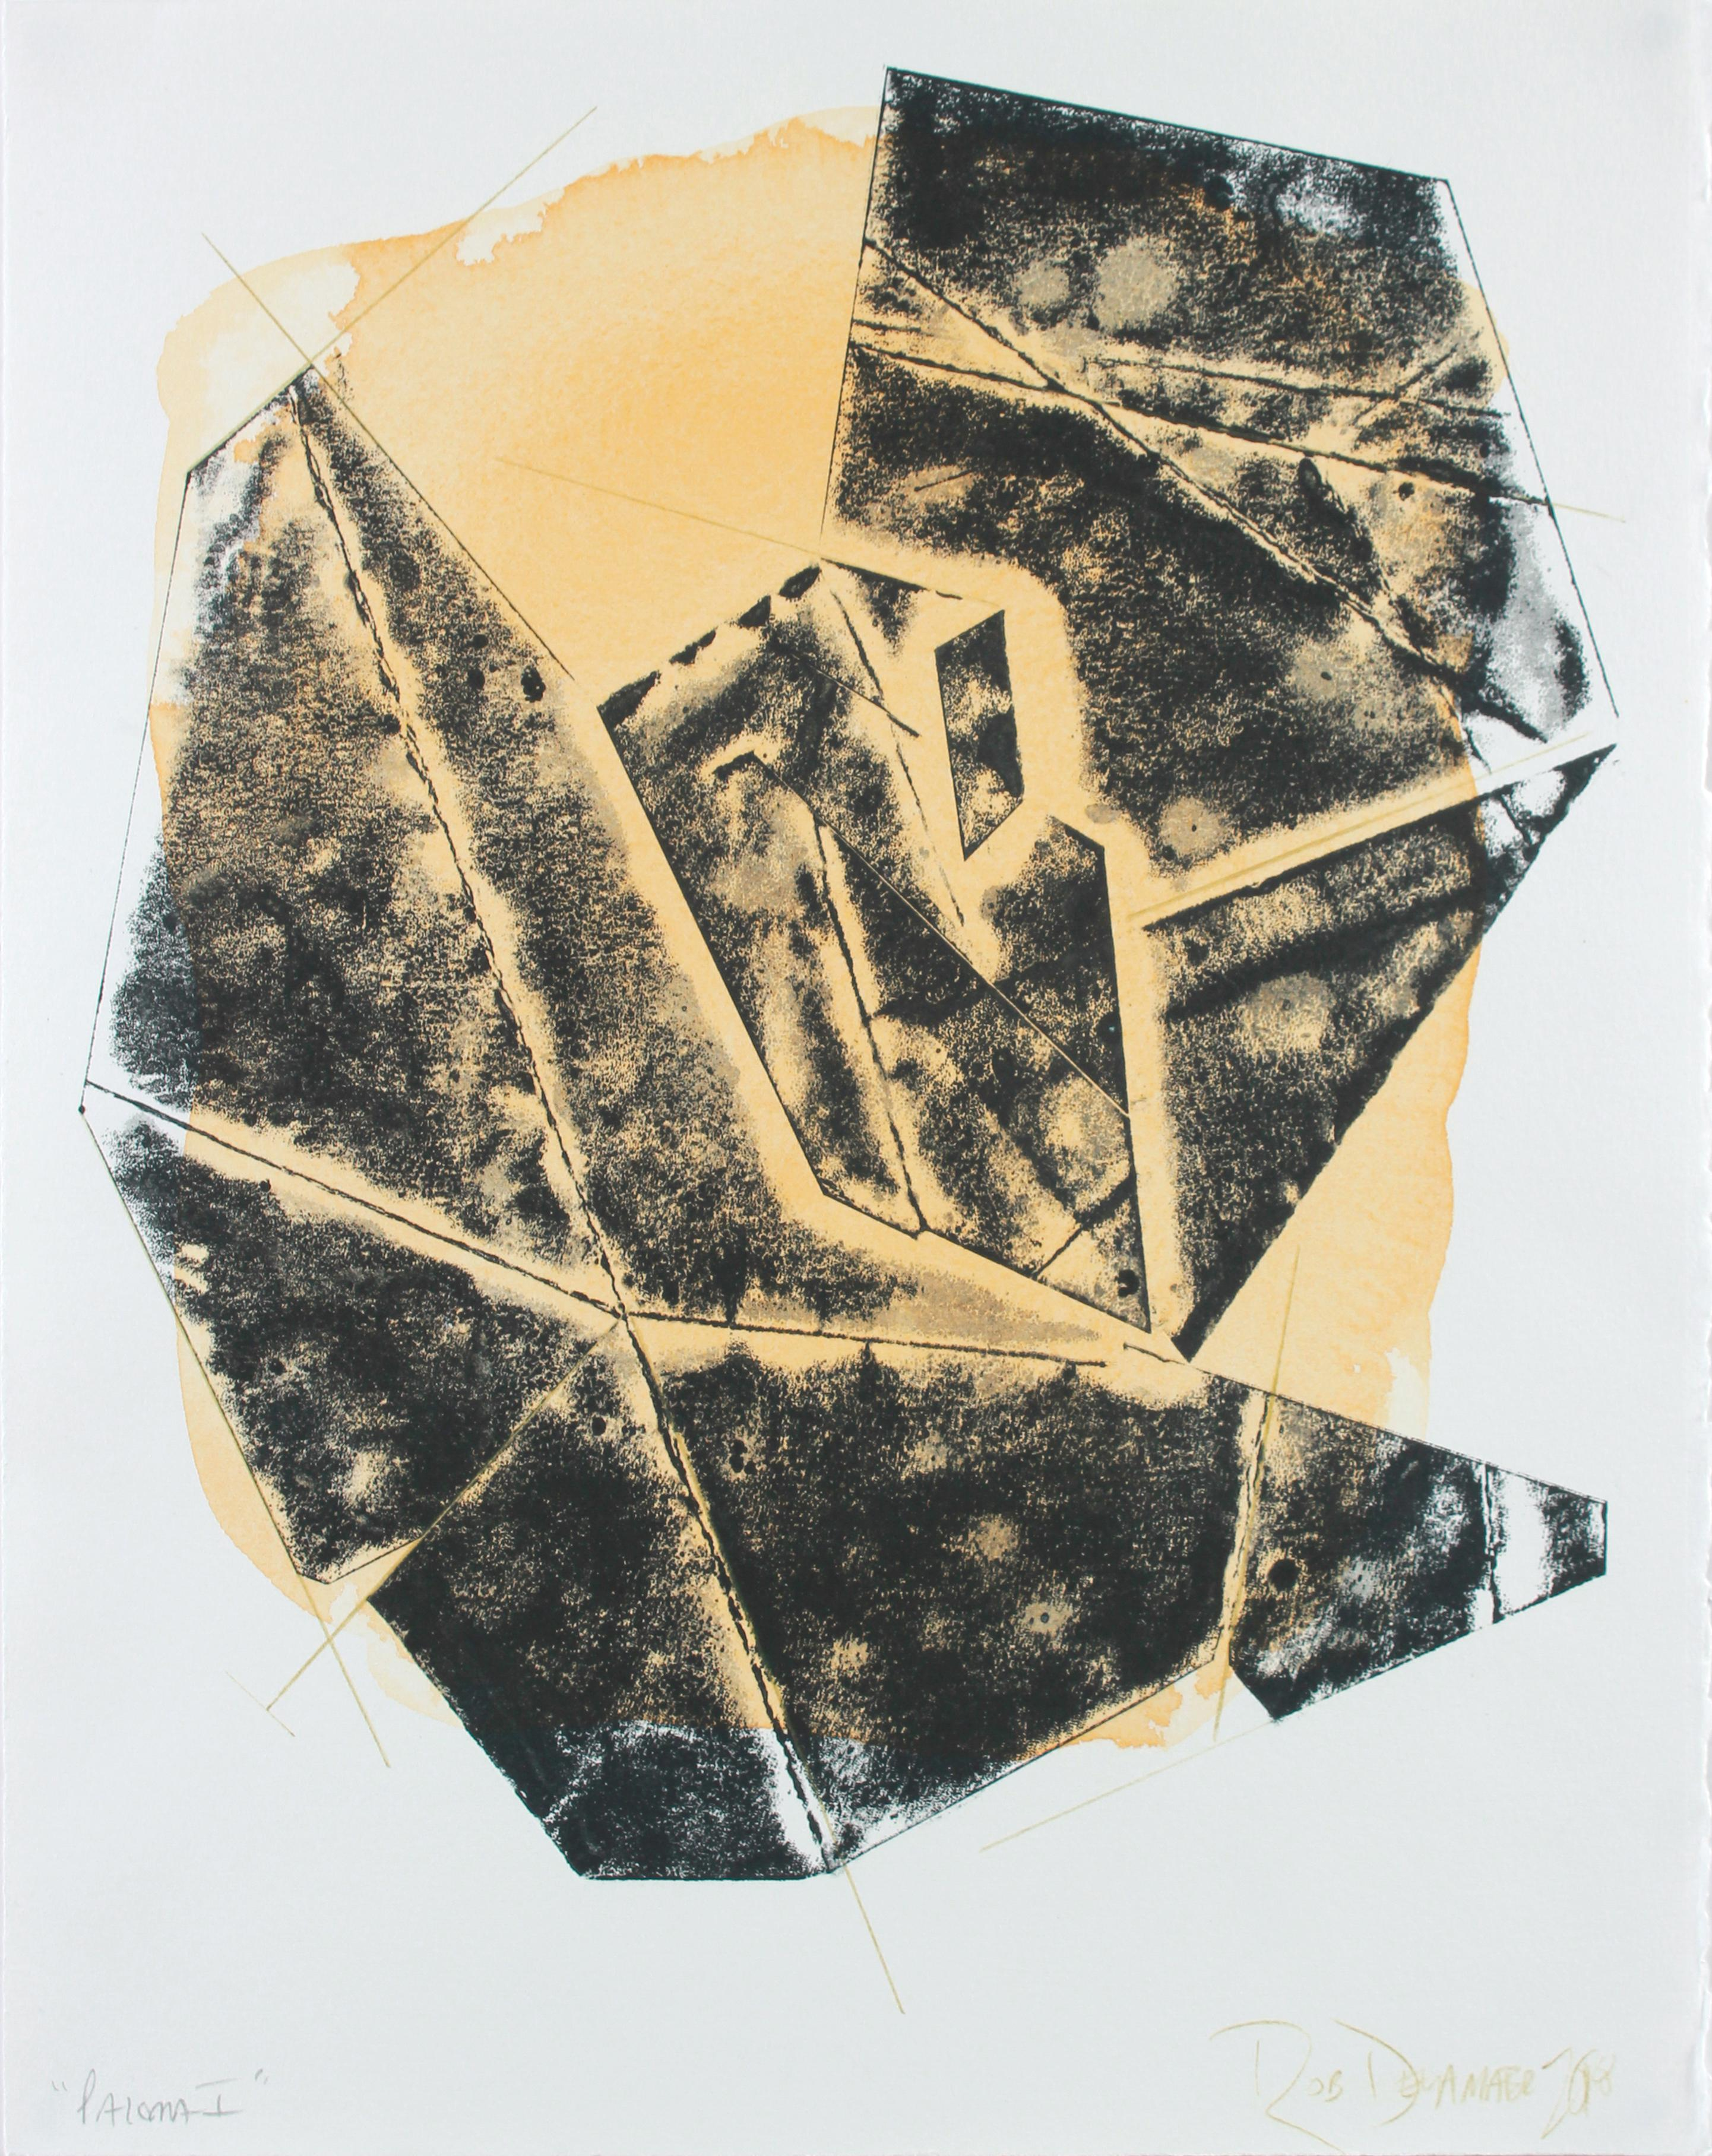 """""""Paloma I"""" Contemporary Geometric Monotype on Paper Abstract in Yellow and Black"""